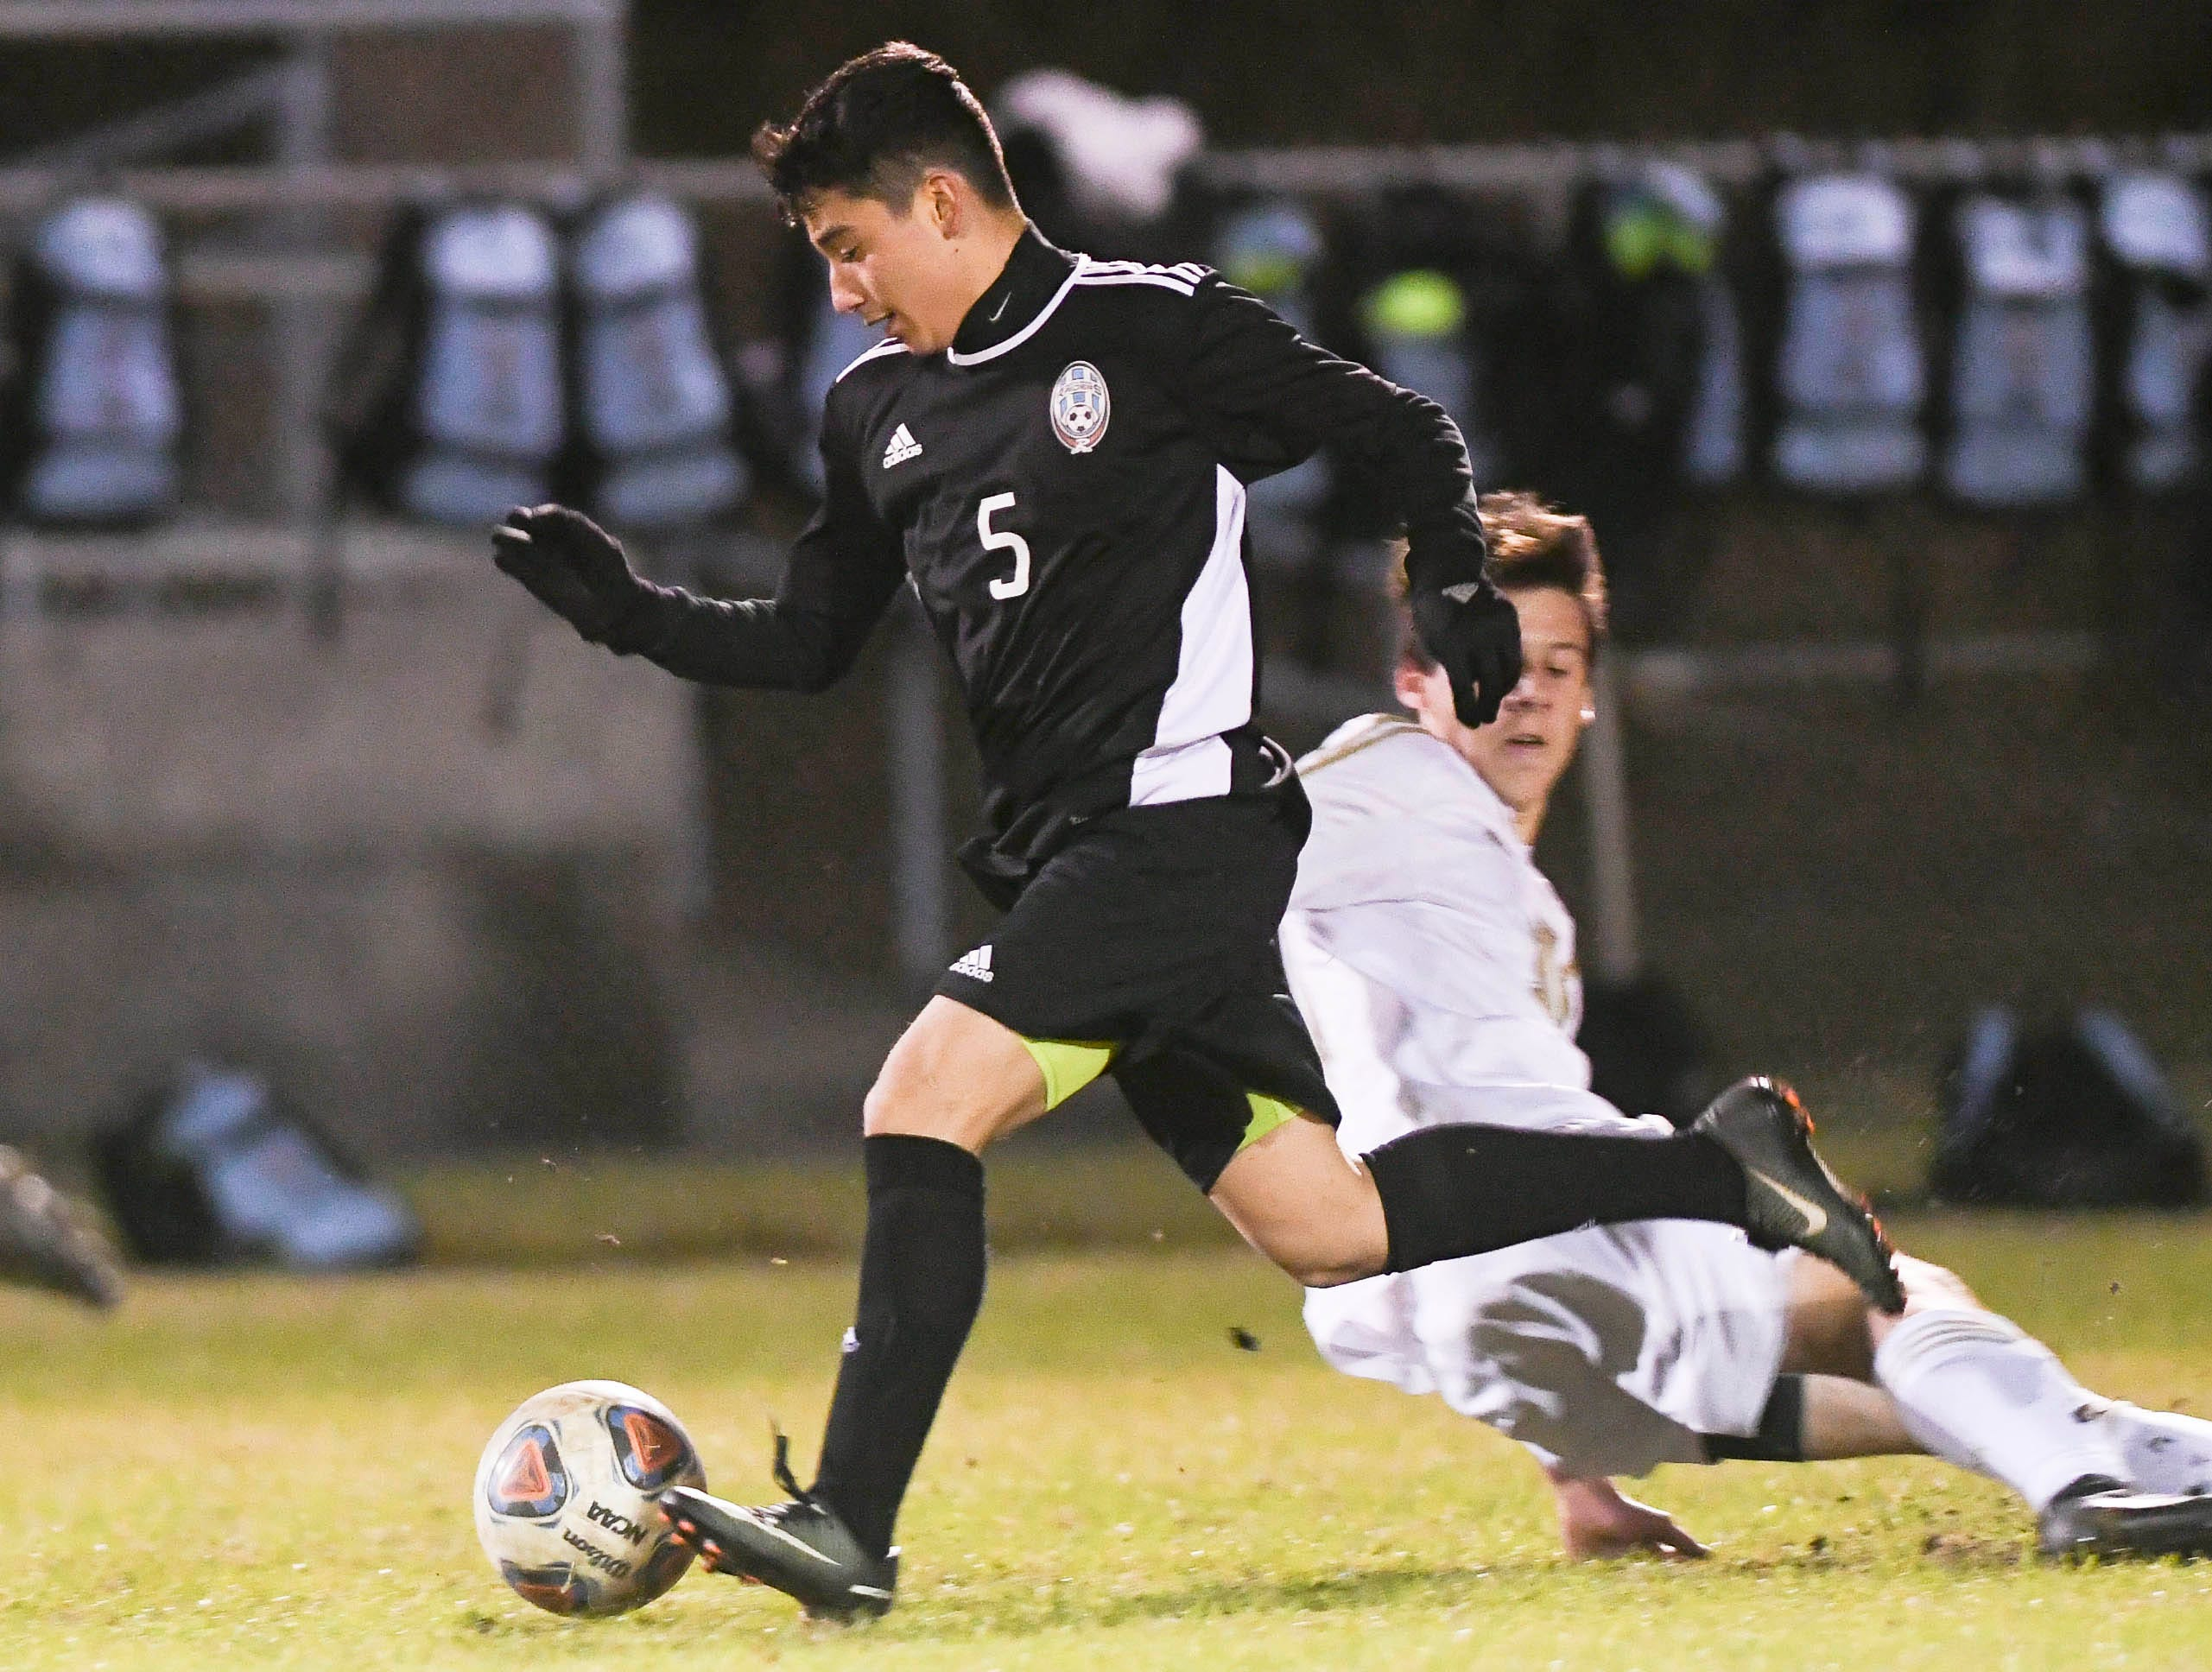 Arath Castaneda of Rockledge drives downfield during Wednesday's District 12, Class 3A semifinal at McLarty Stadium